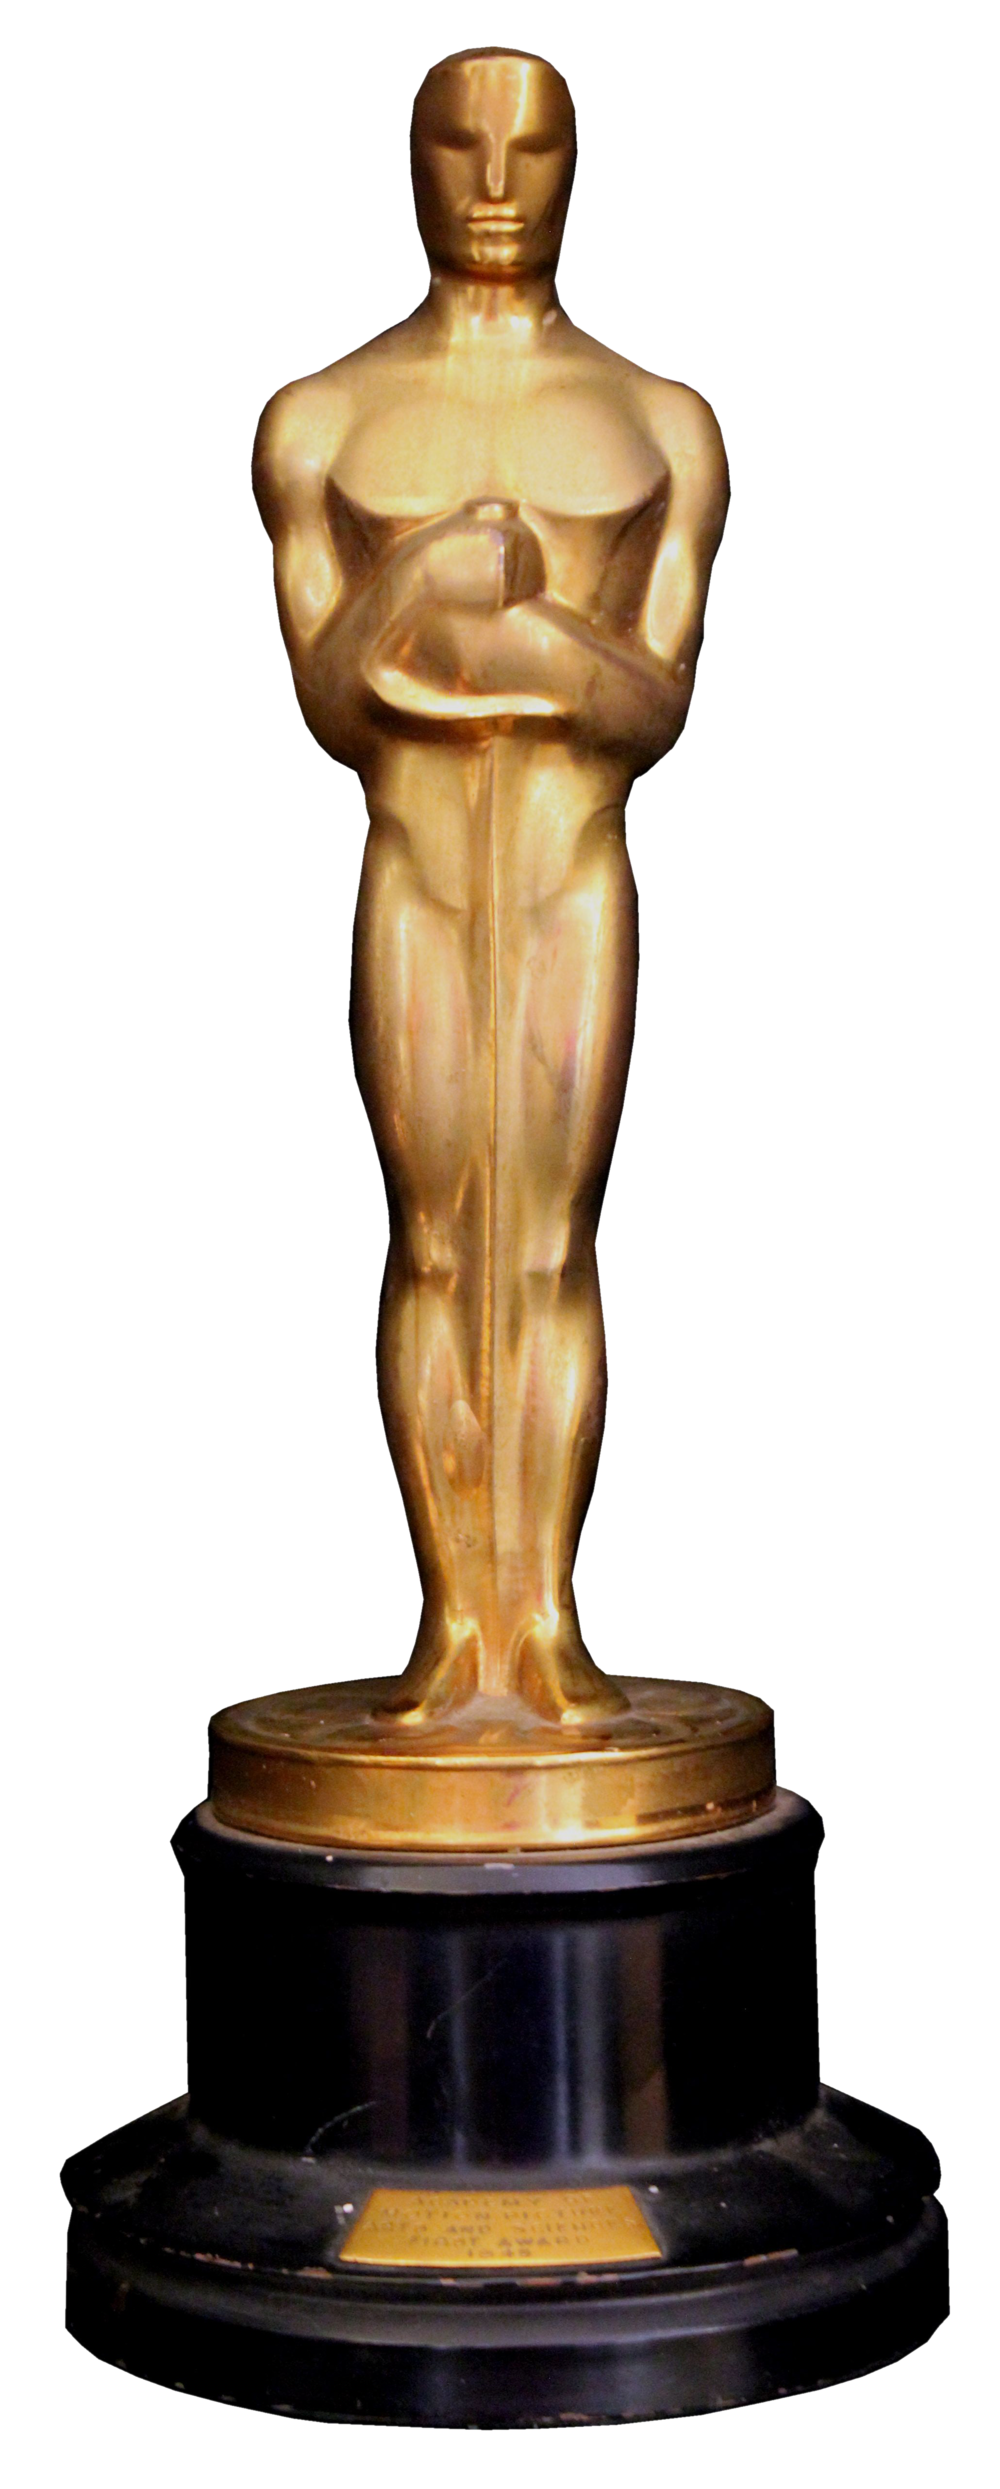 Oscar Award Clipart further Photo in addition Red carpet hollywood sweet 16 birthday invite 161309149961065011 also Award winner clipart in addition Metal Wall Art Silhouettes ICONIC. on oscar statue clip art